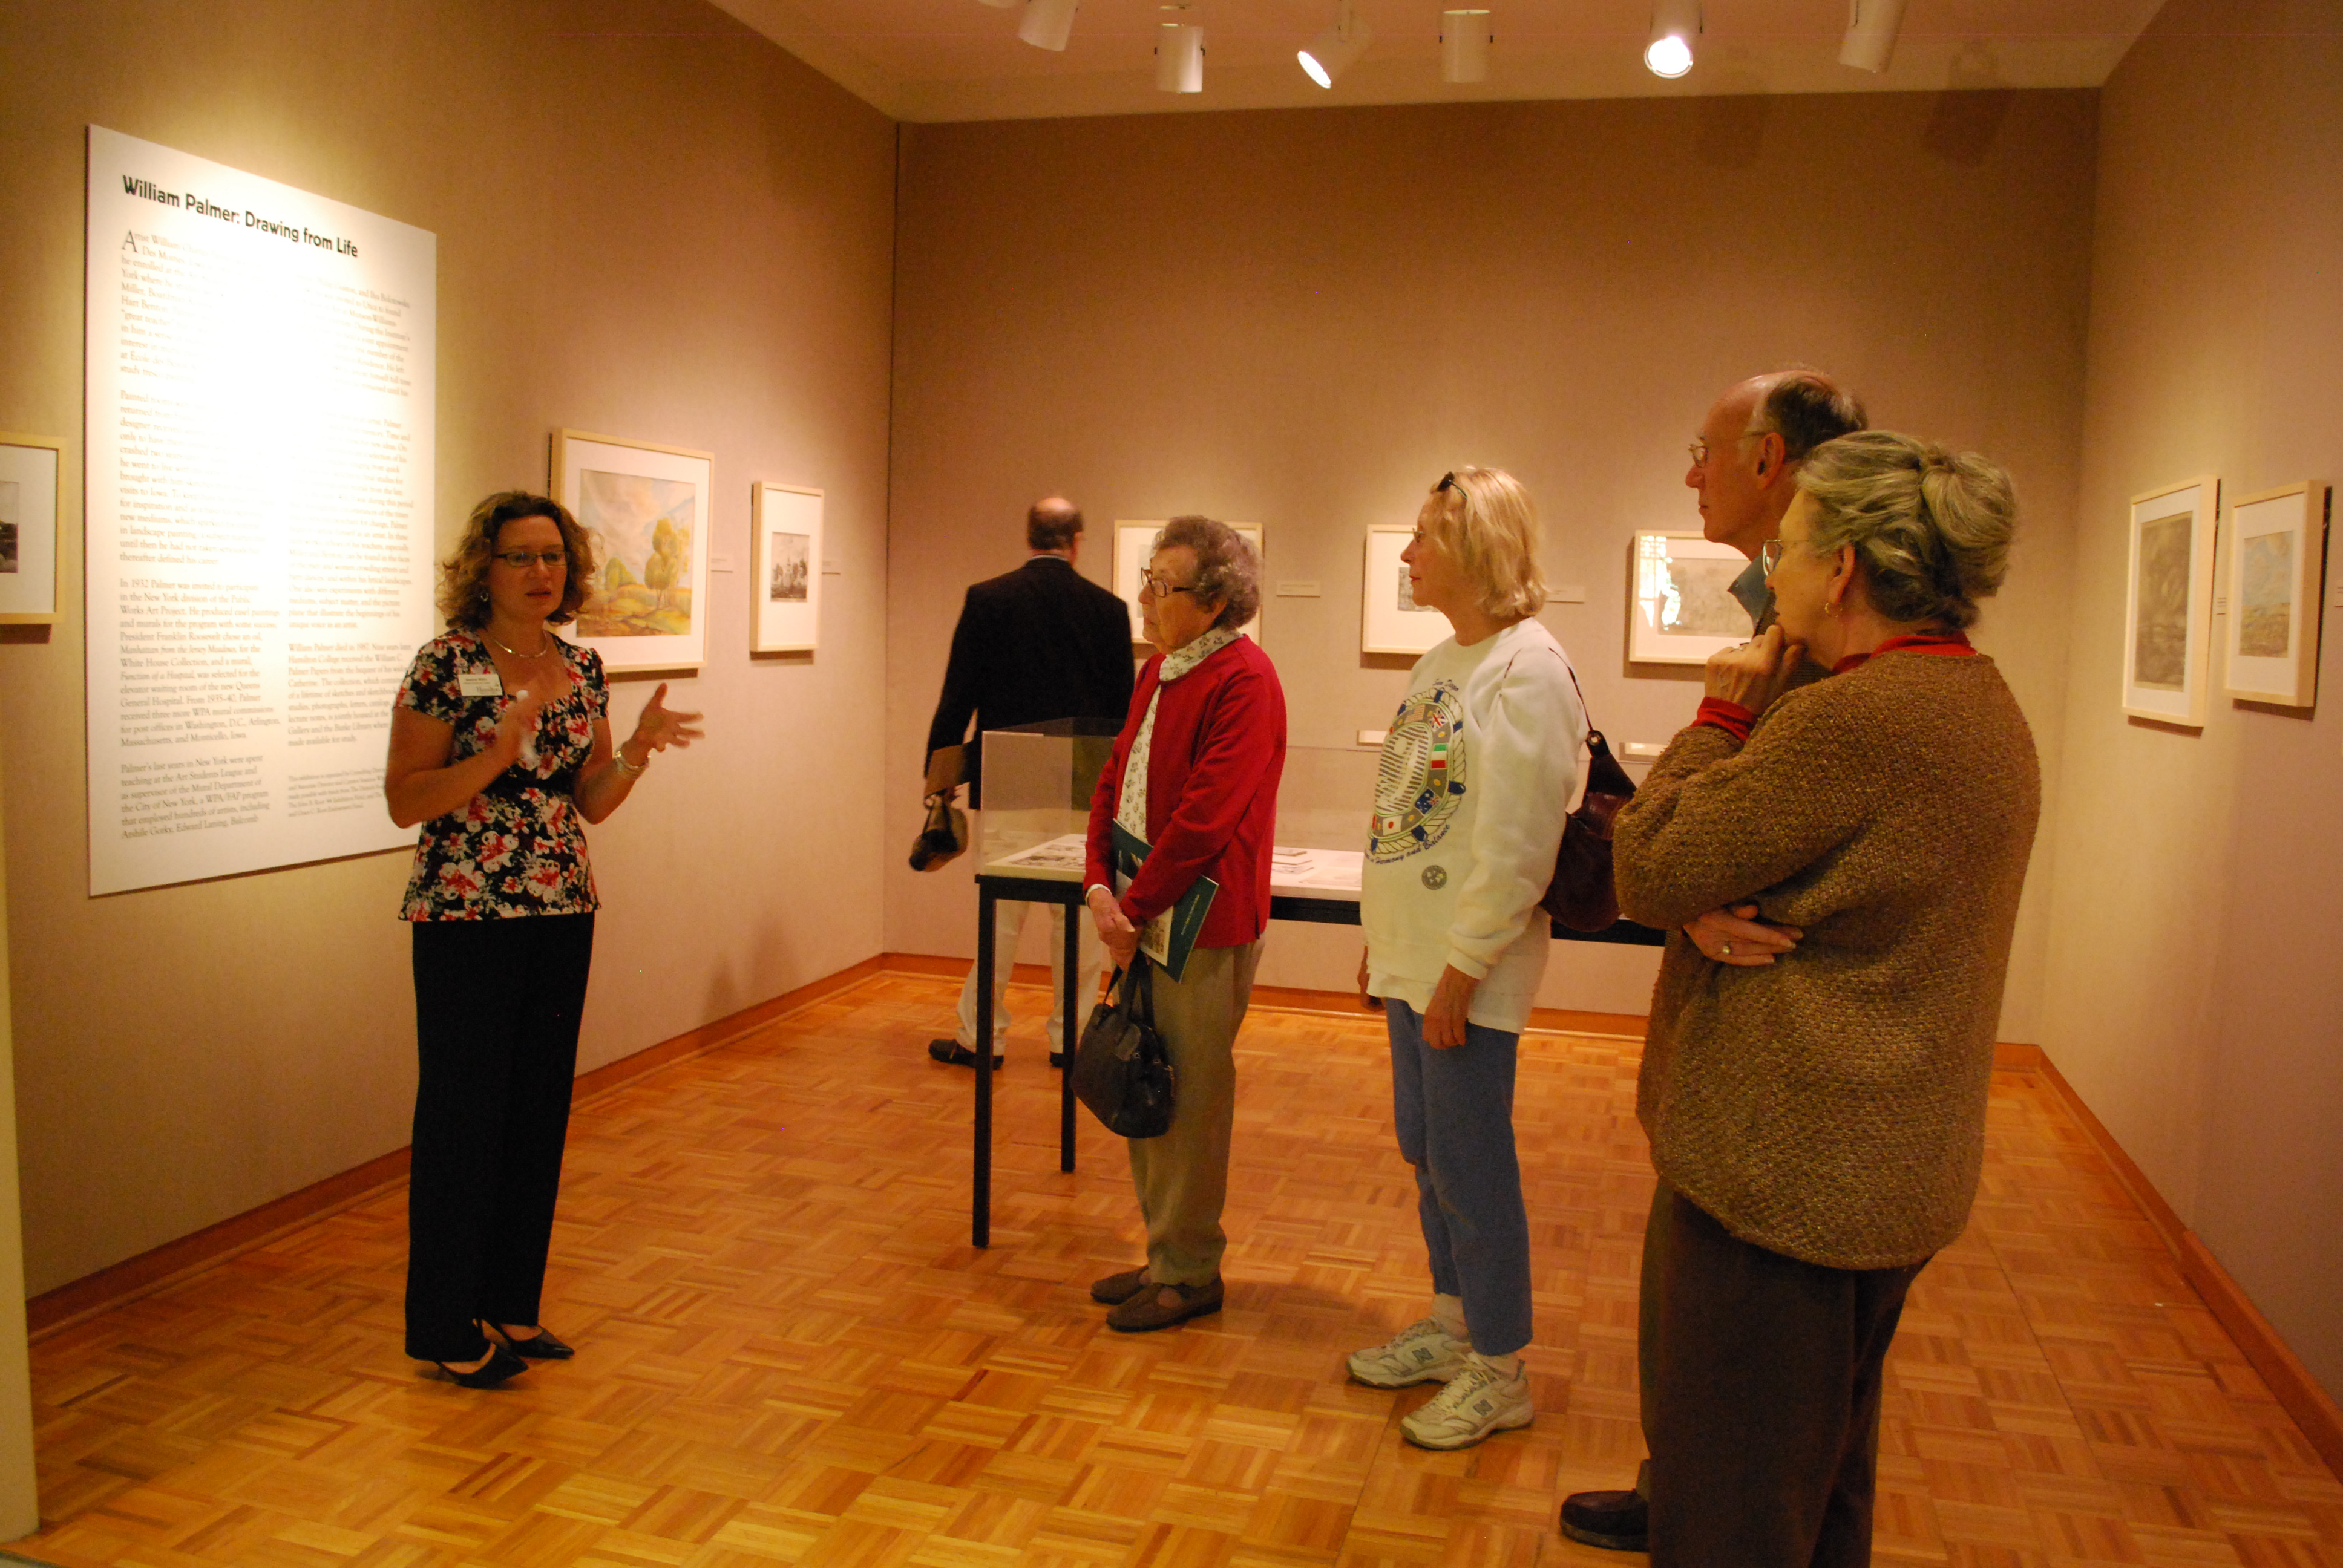 Associate Director Susanna White gave a talk on current exhibitions in Emerson Gallery